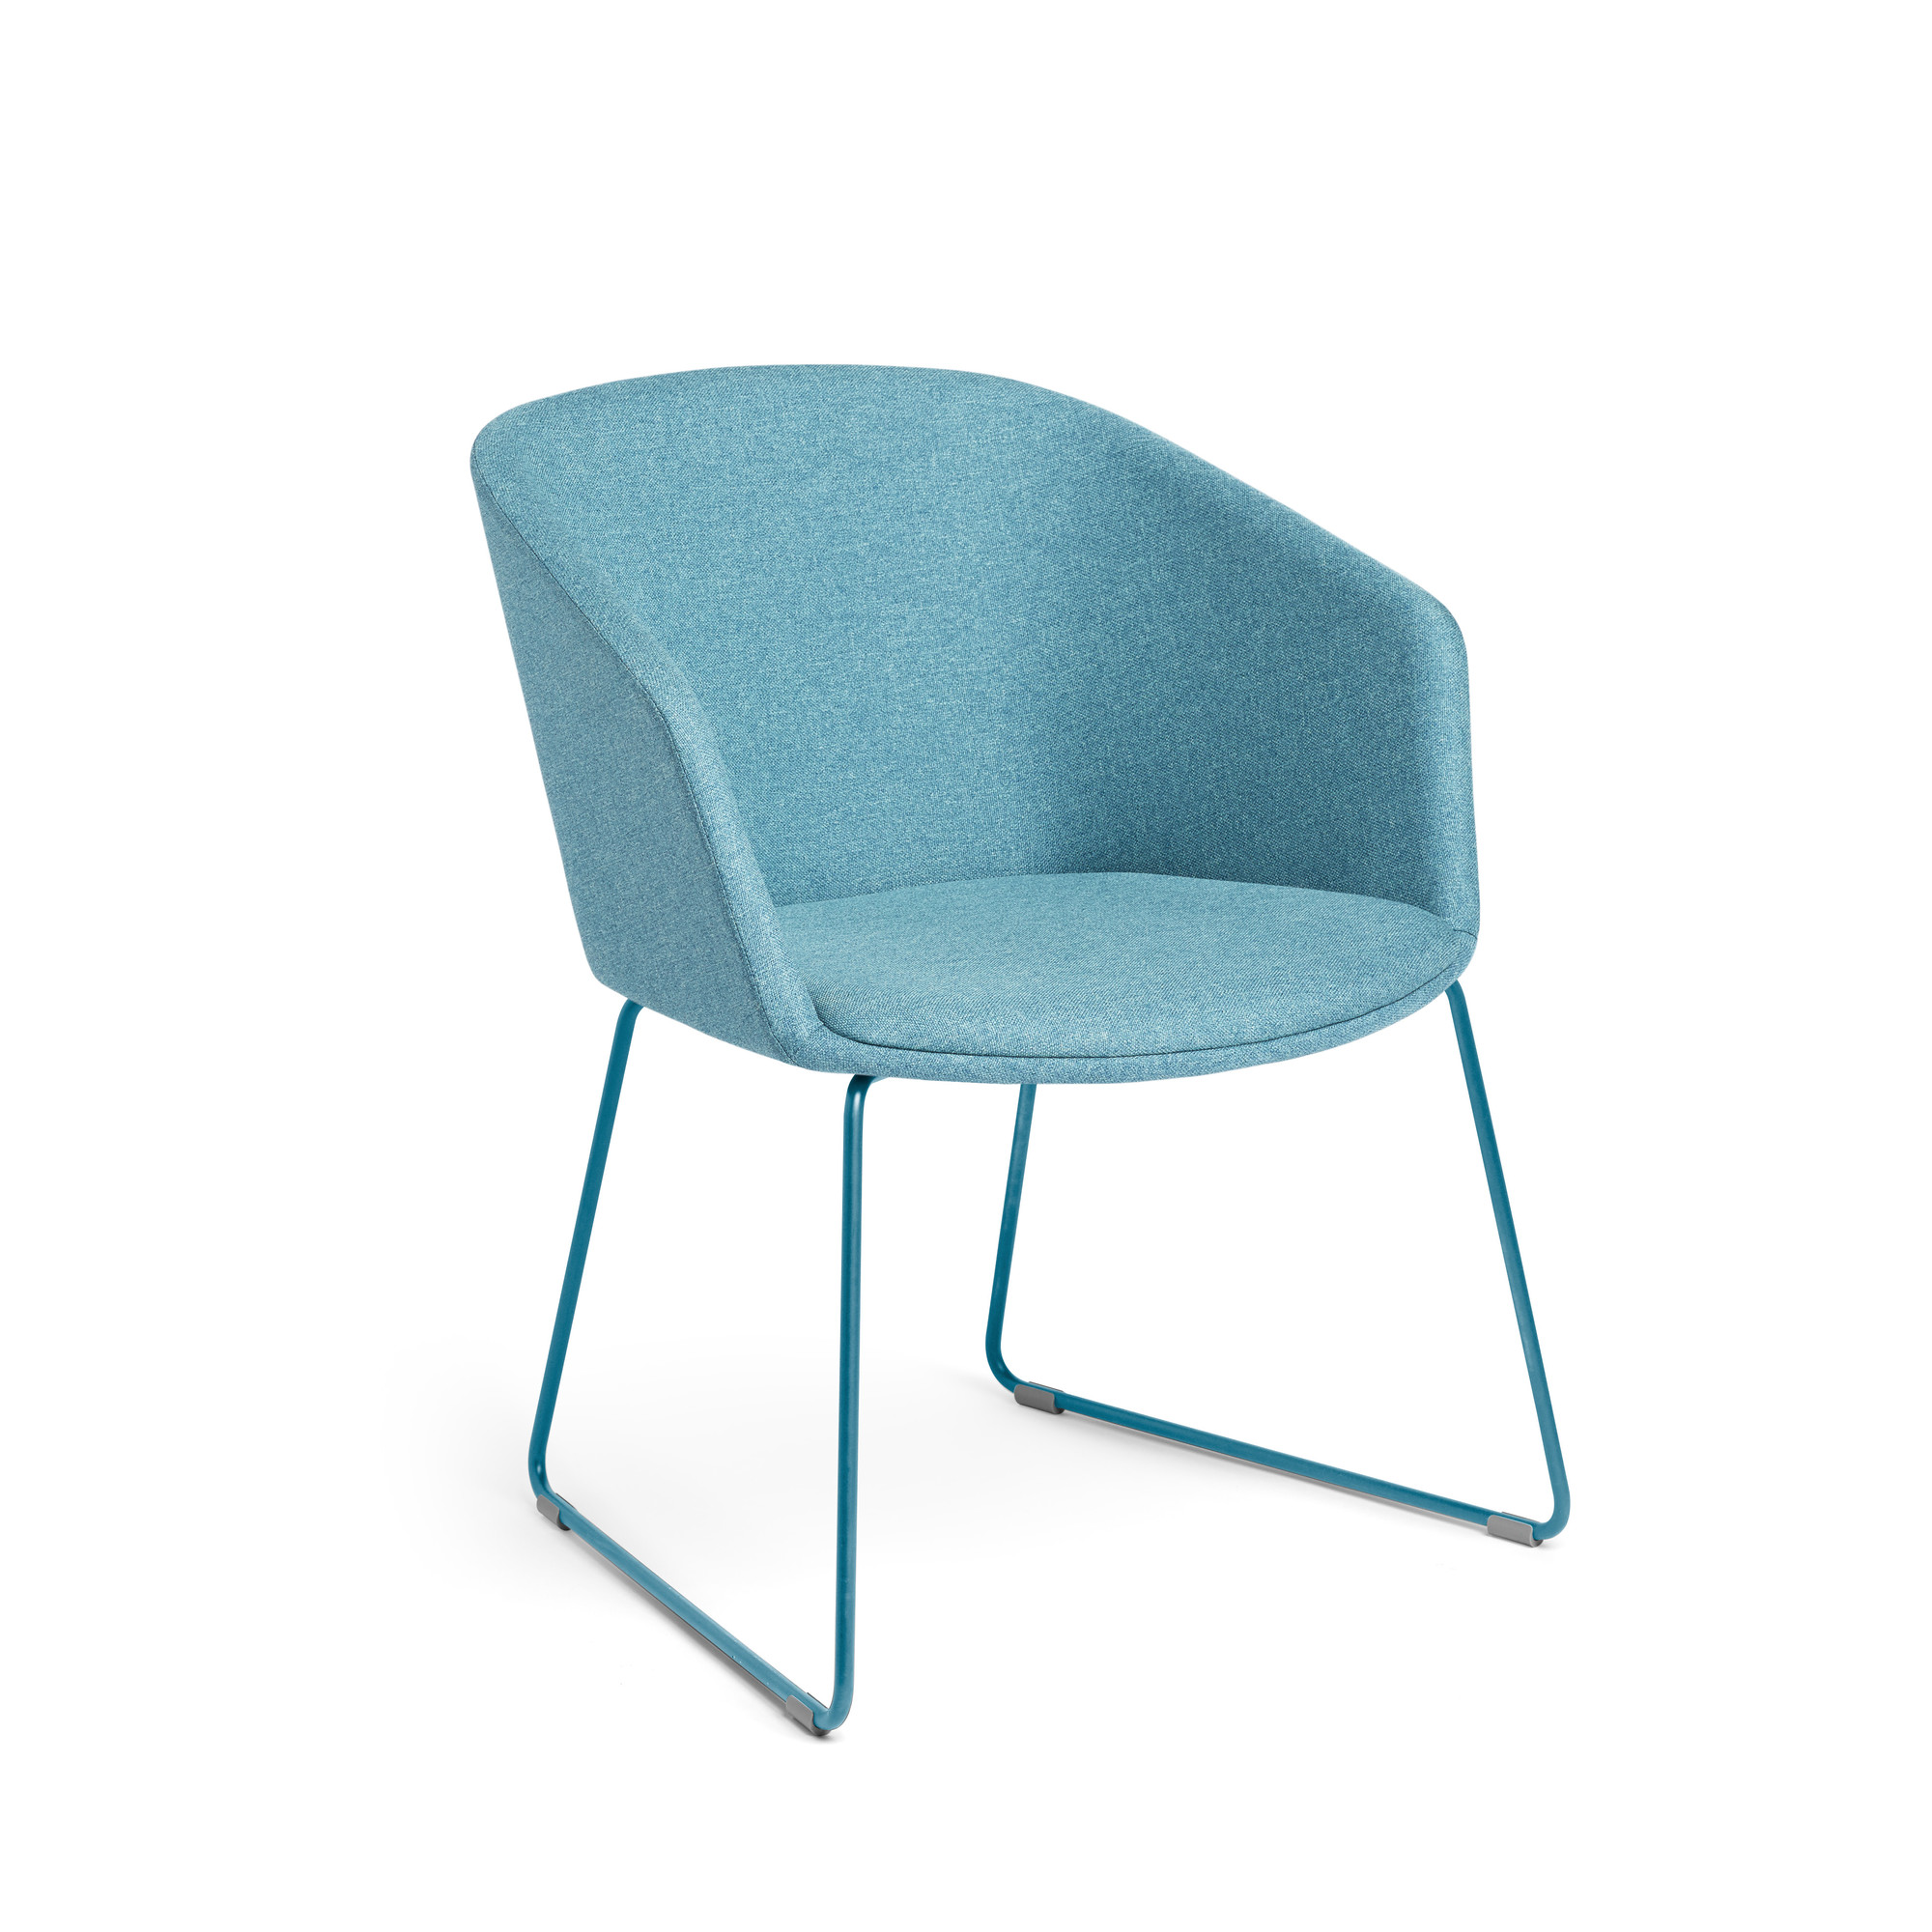 Blue Pitch Sled Chair Chairs